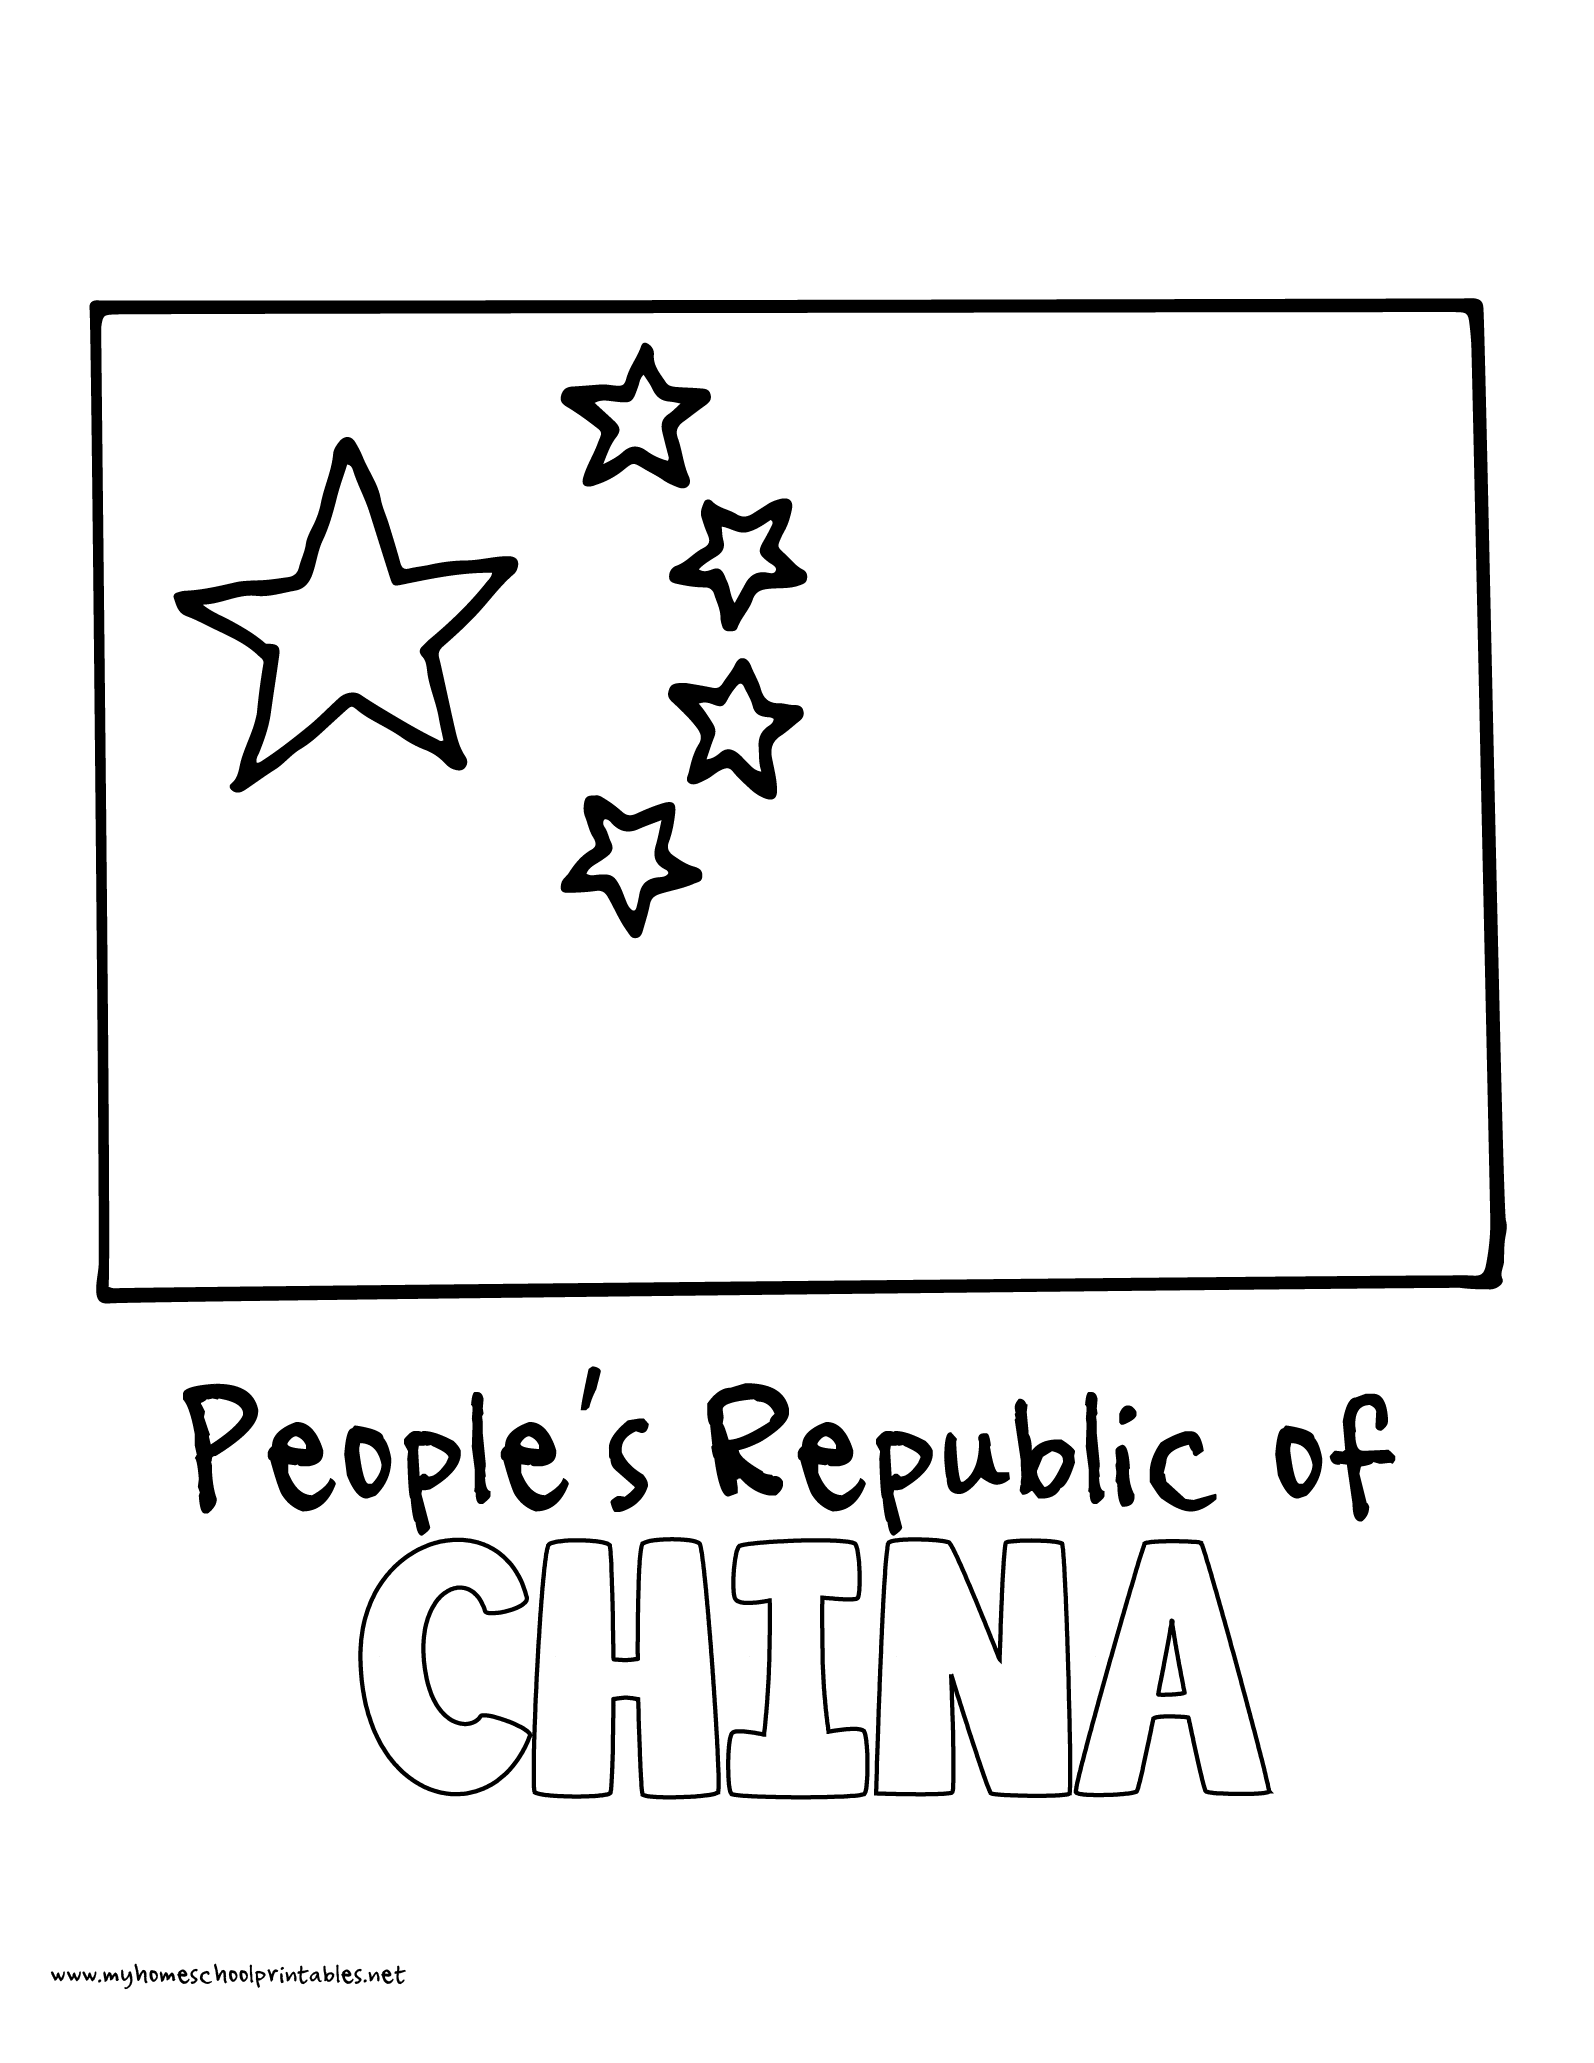 chinese flag coloring page chinese flag coloring pages coloring pages to download flag page coloring chinese